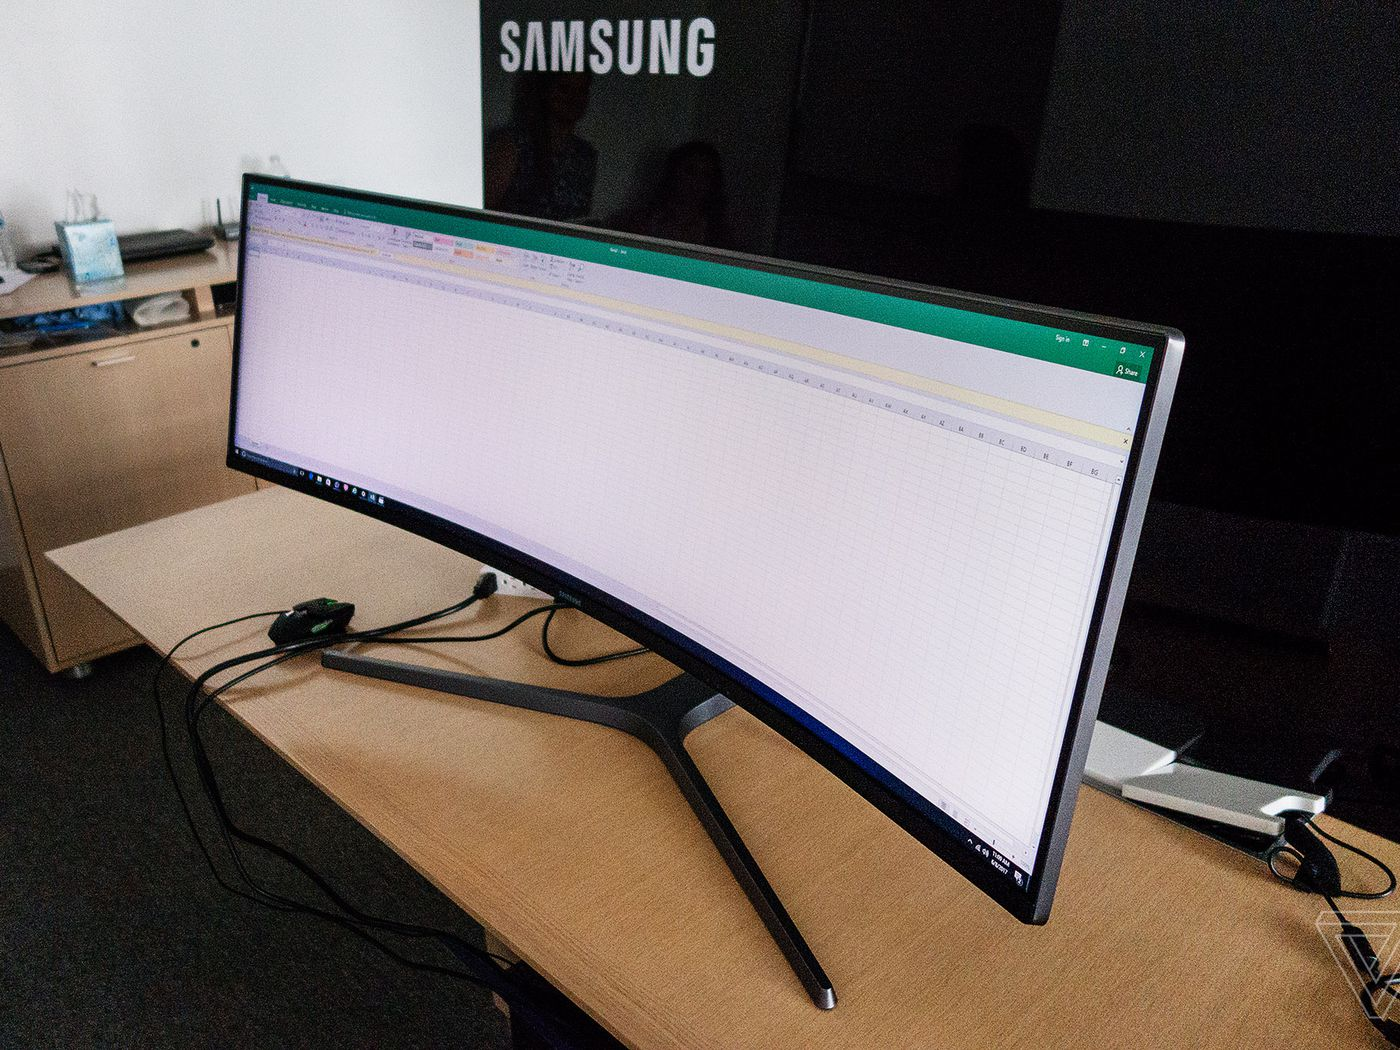 Samsungs 49 Inch Ultrawide Curved Display Is Basically Just Half A TV At This Point